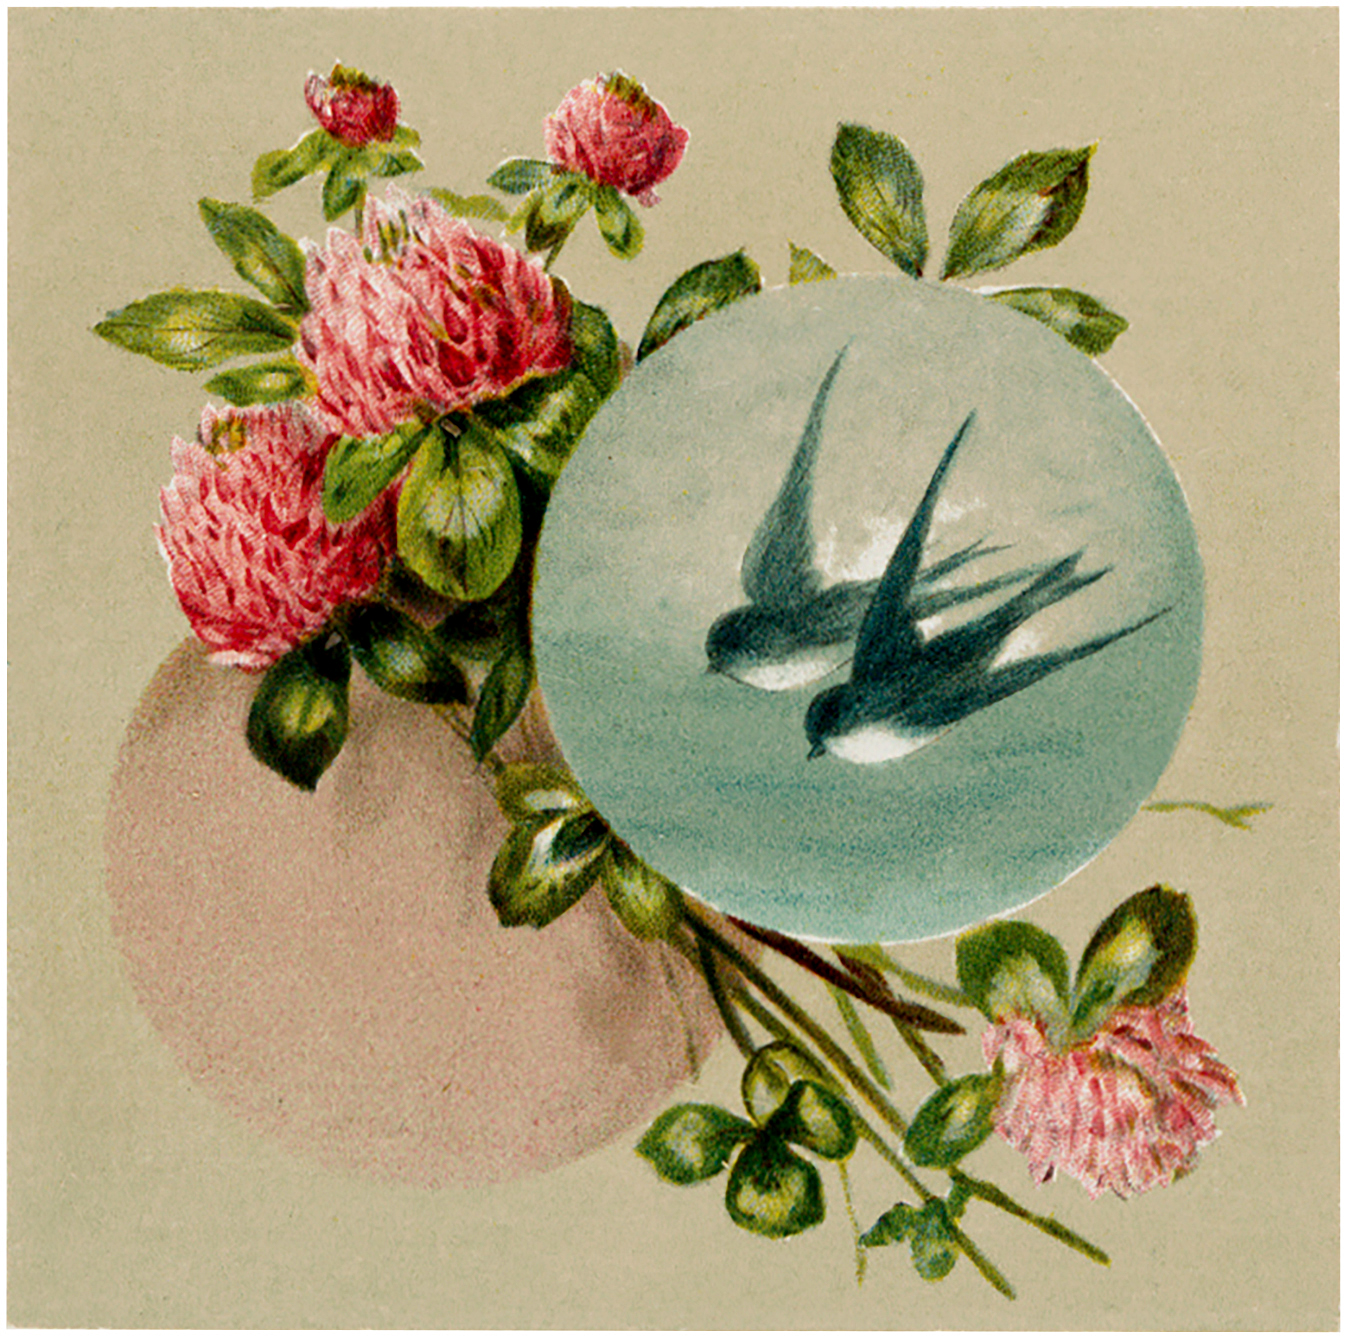 Vintage Birds and Clover Image